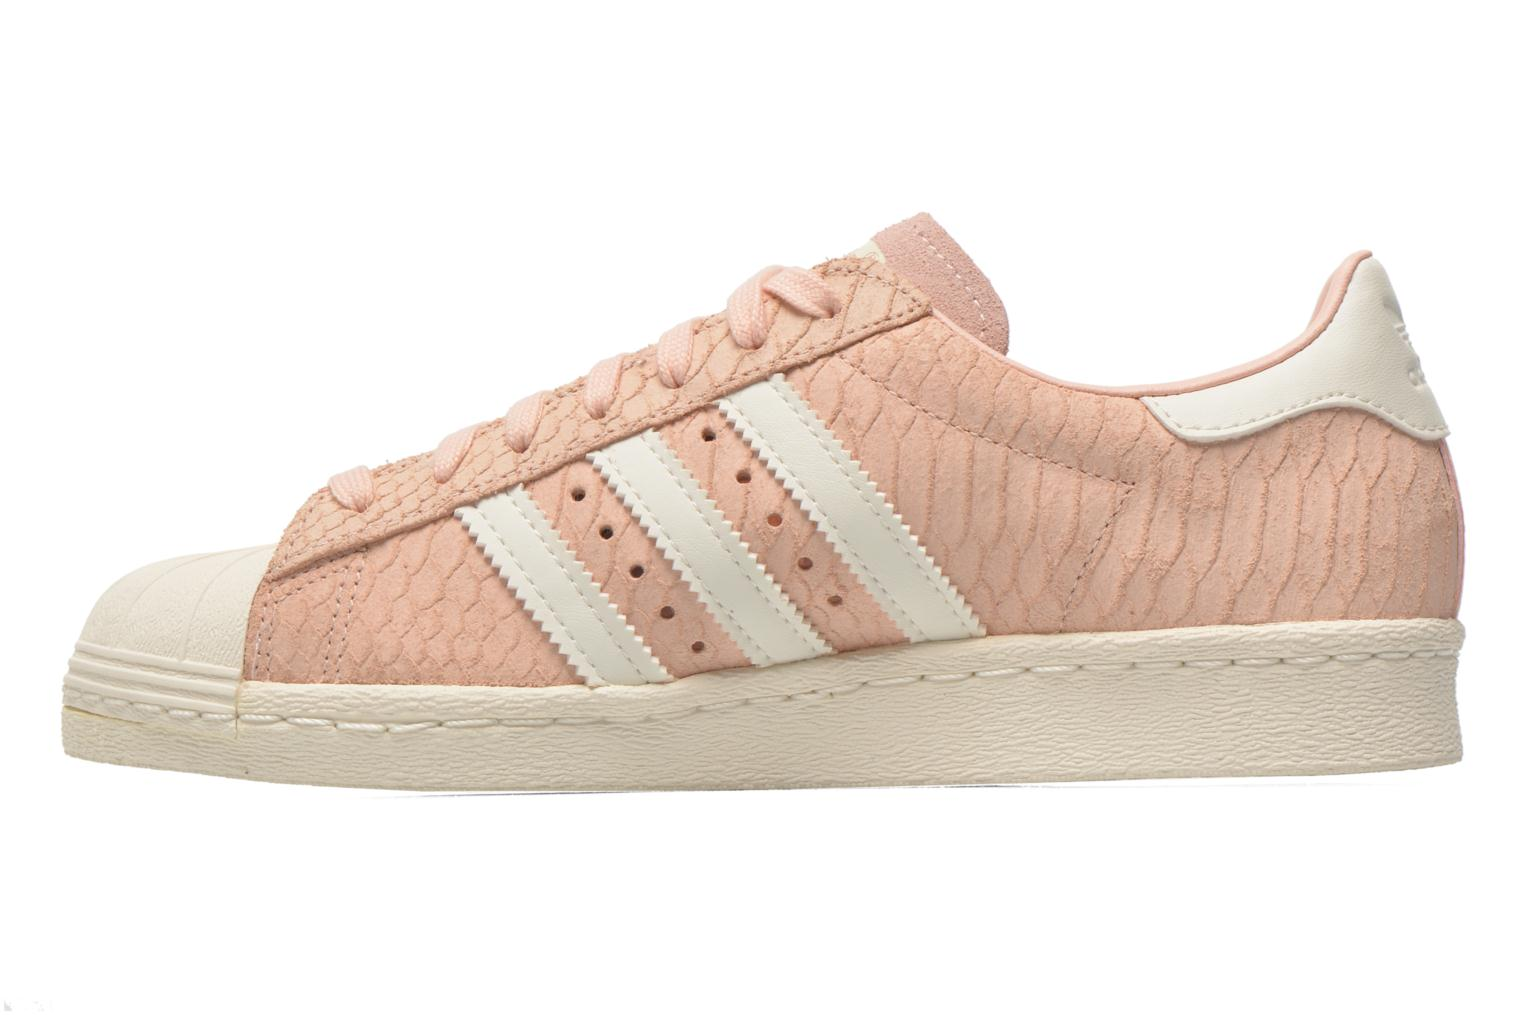 grossiste 21d15 ba183 adidas superstar croco rose